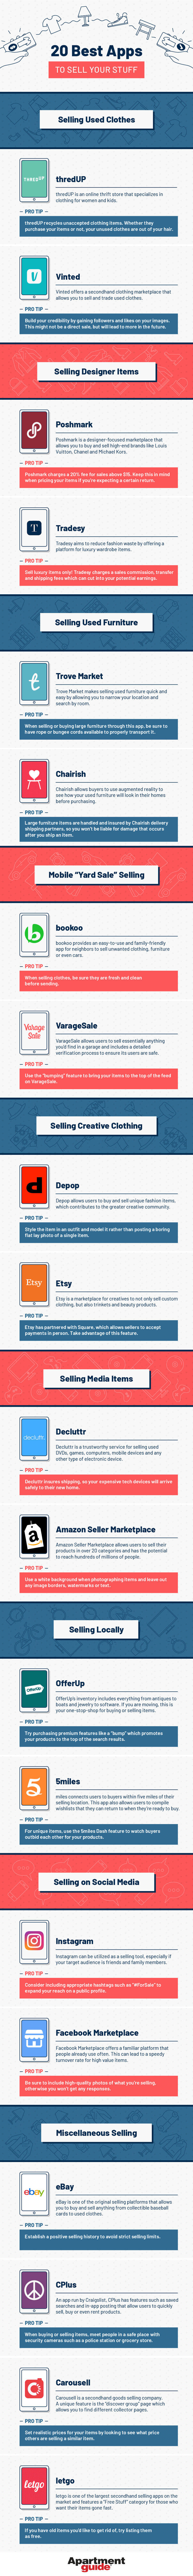 best selling apps infographic